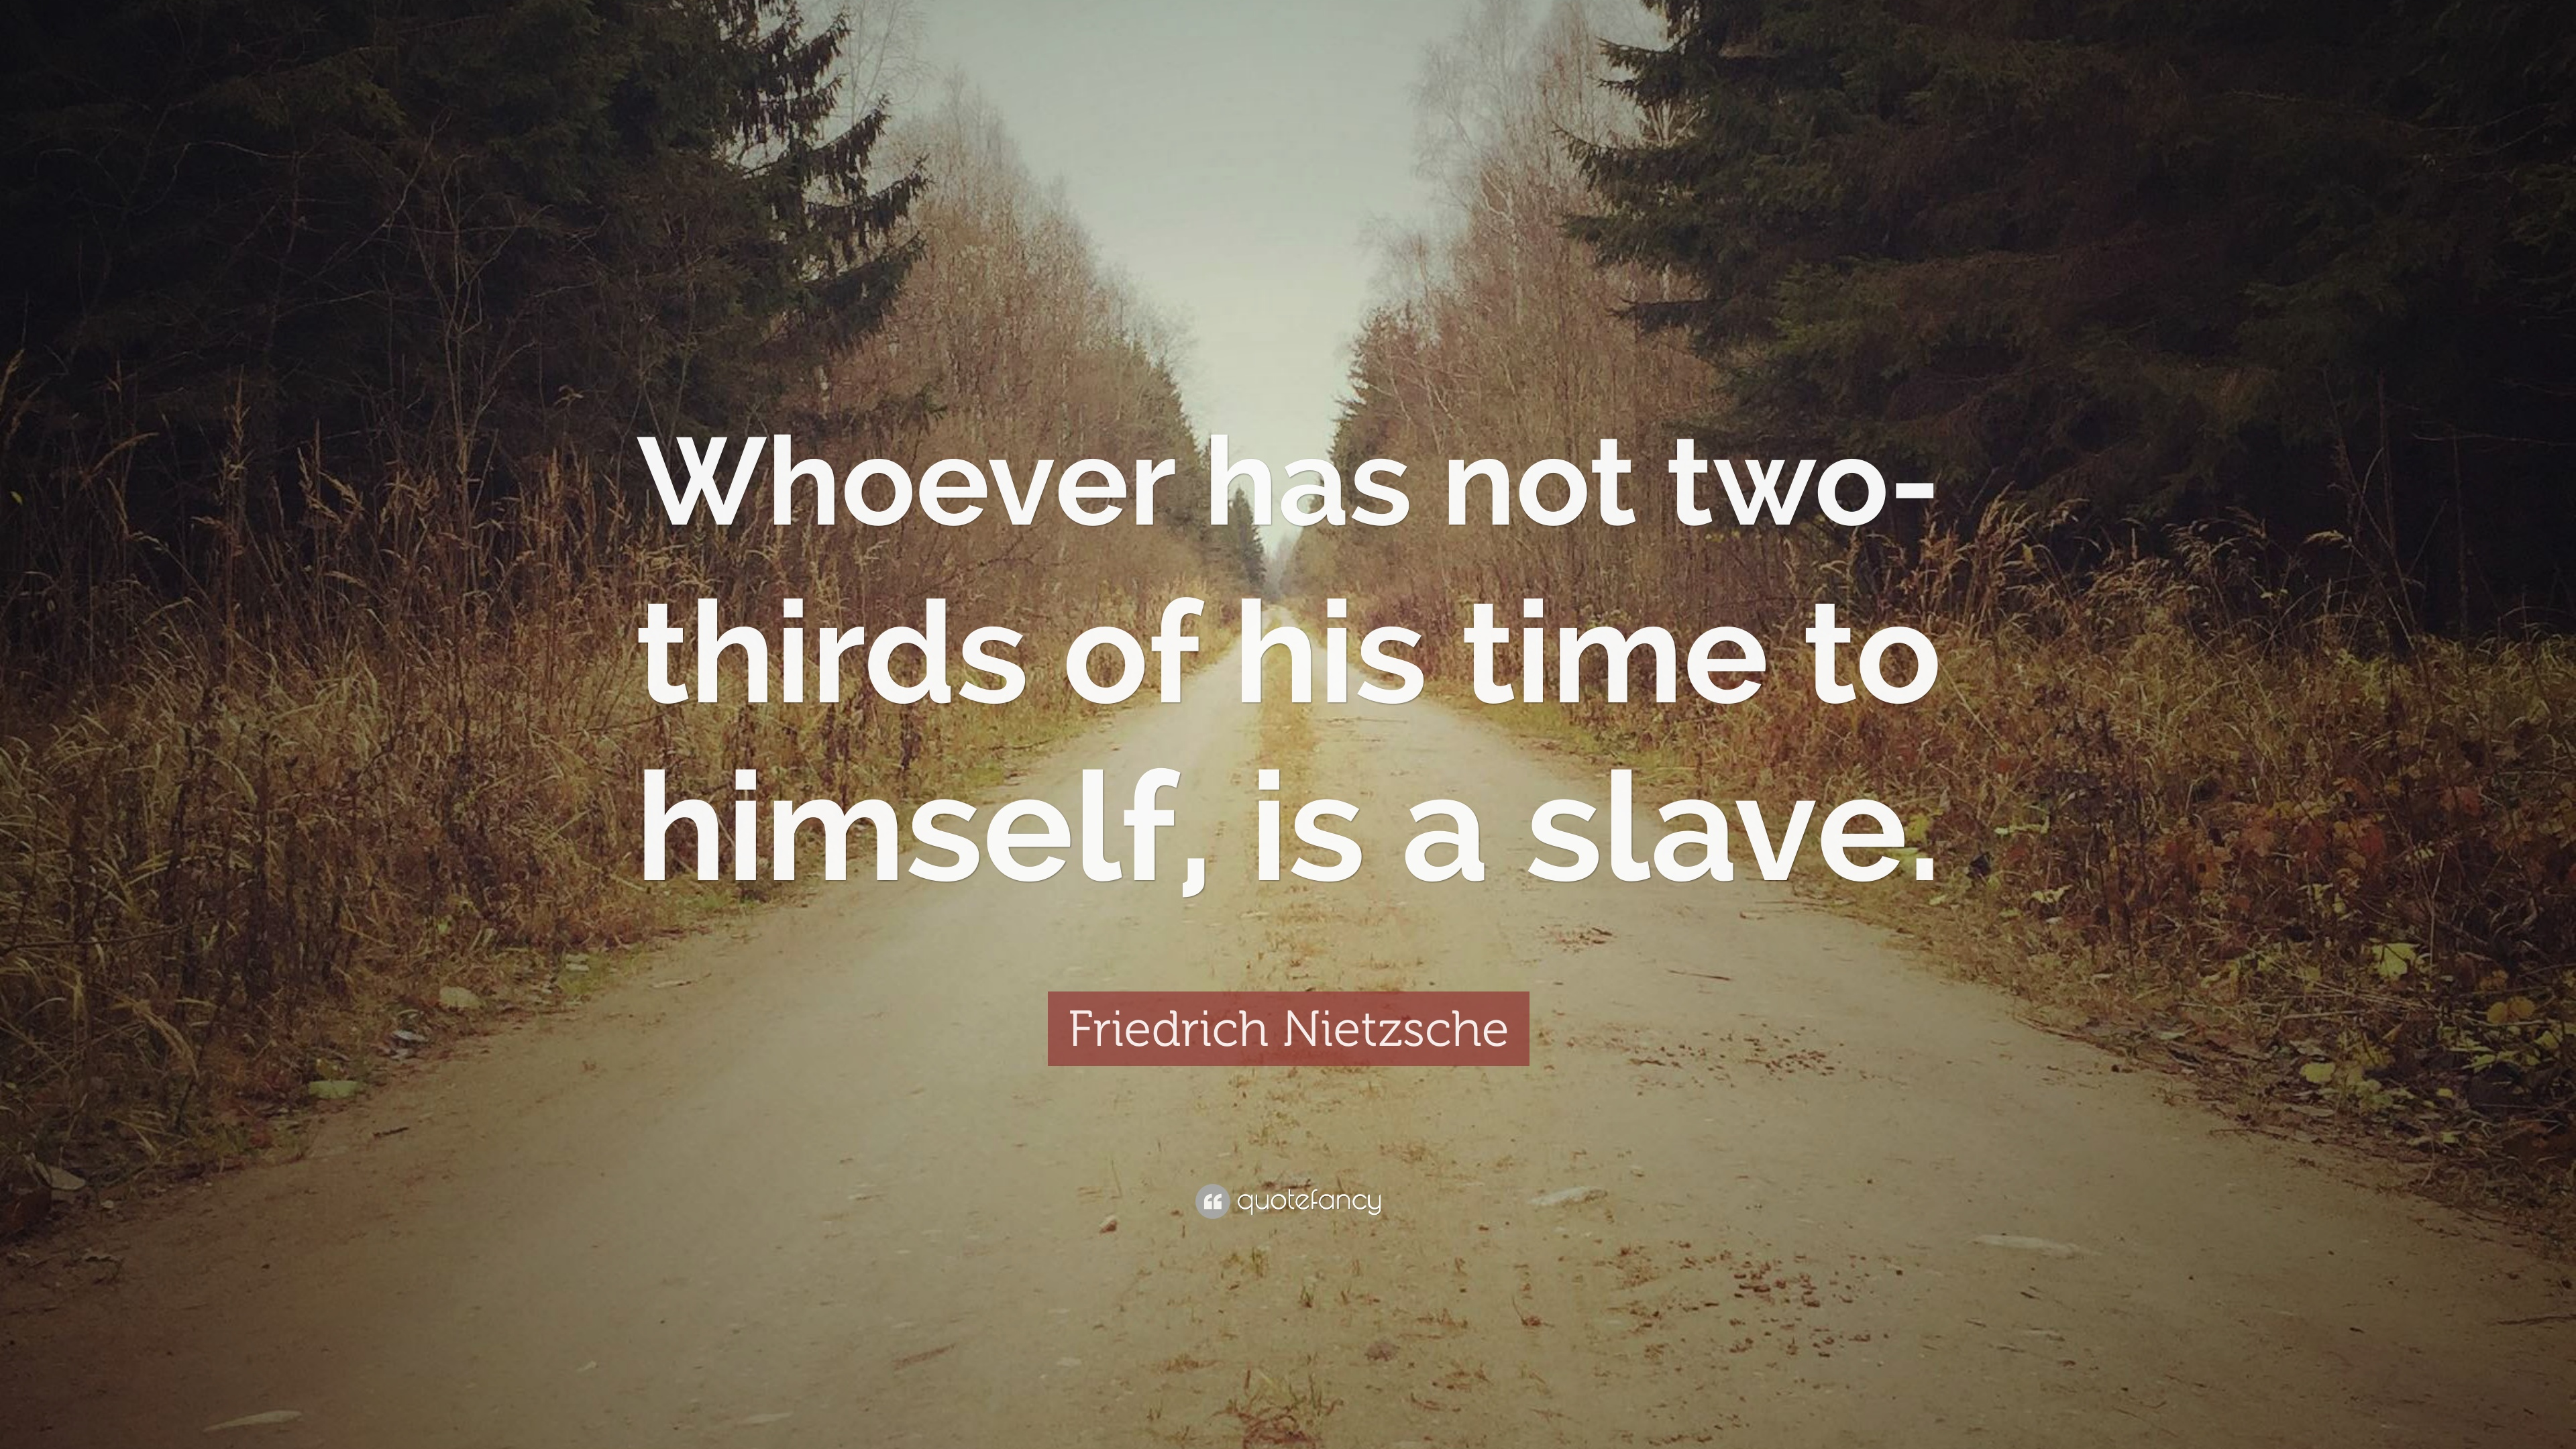 Friedrich Nietzsche Quote Whoever Has Not Two Thirds Of His Time